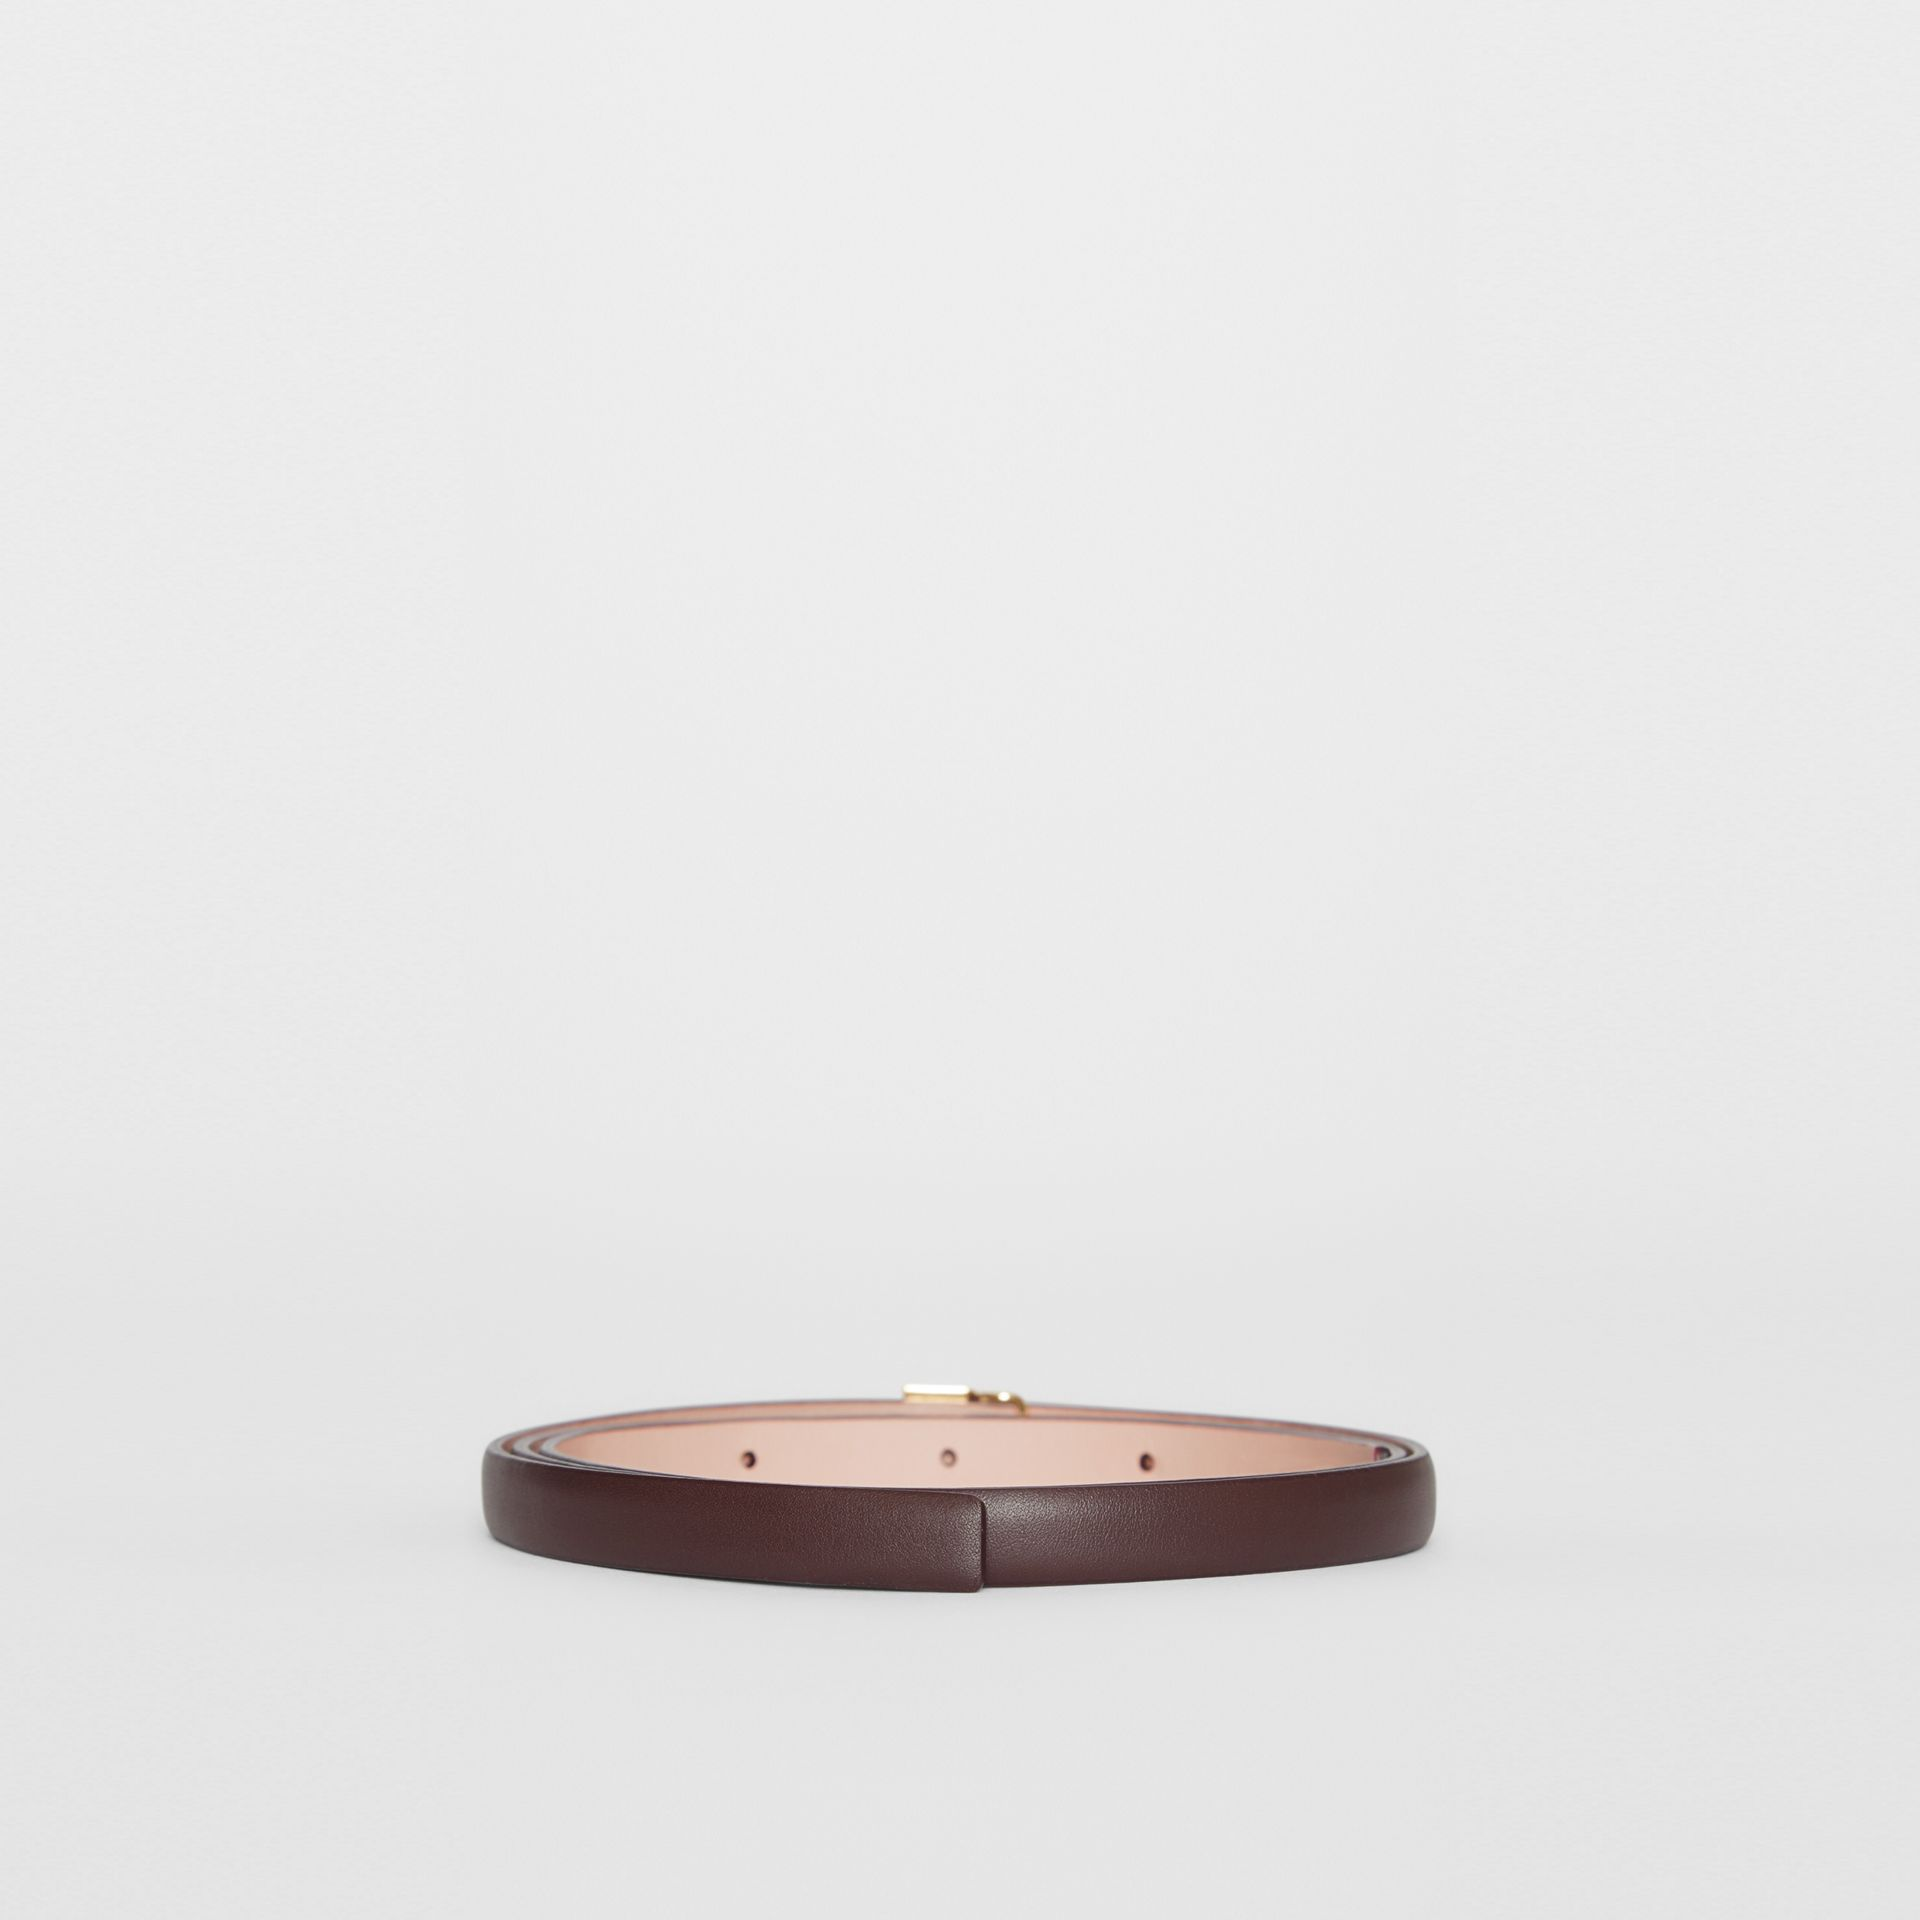 Reversible Monogram Motif Leather Wrap Belt in Oxblood/rose Beige - Women | Burberry - gallery image 4